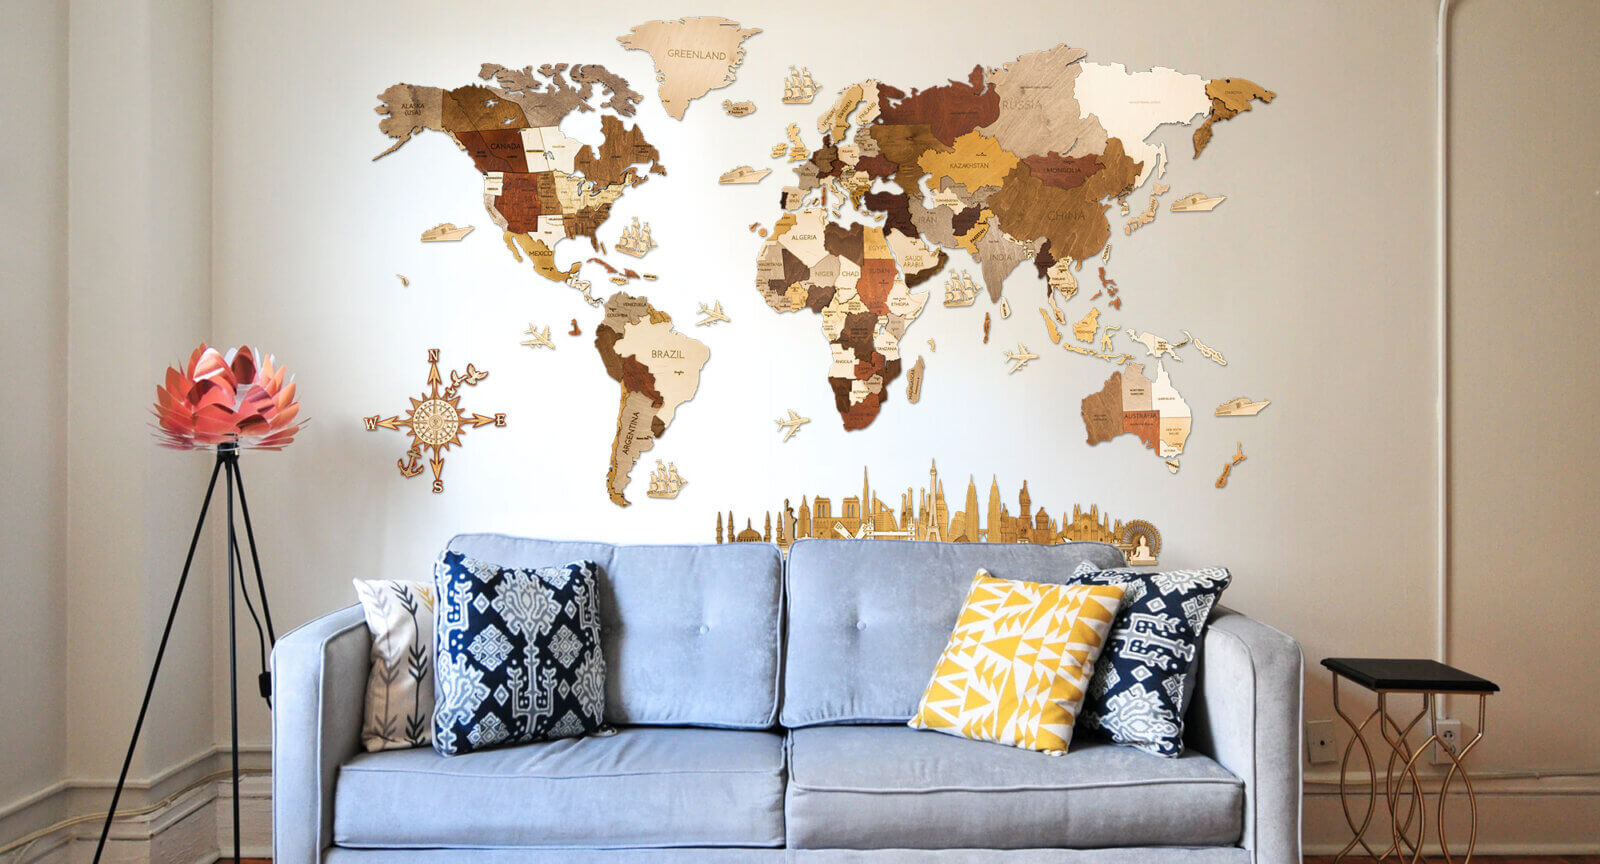 Wooden World Map - Interior with sofa